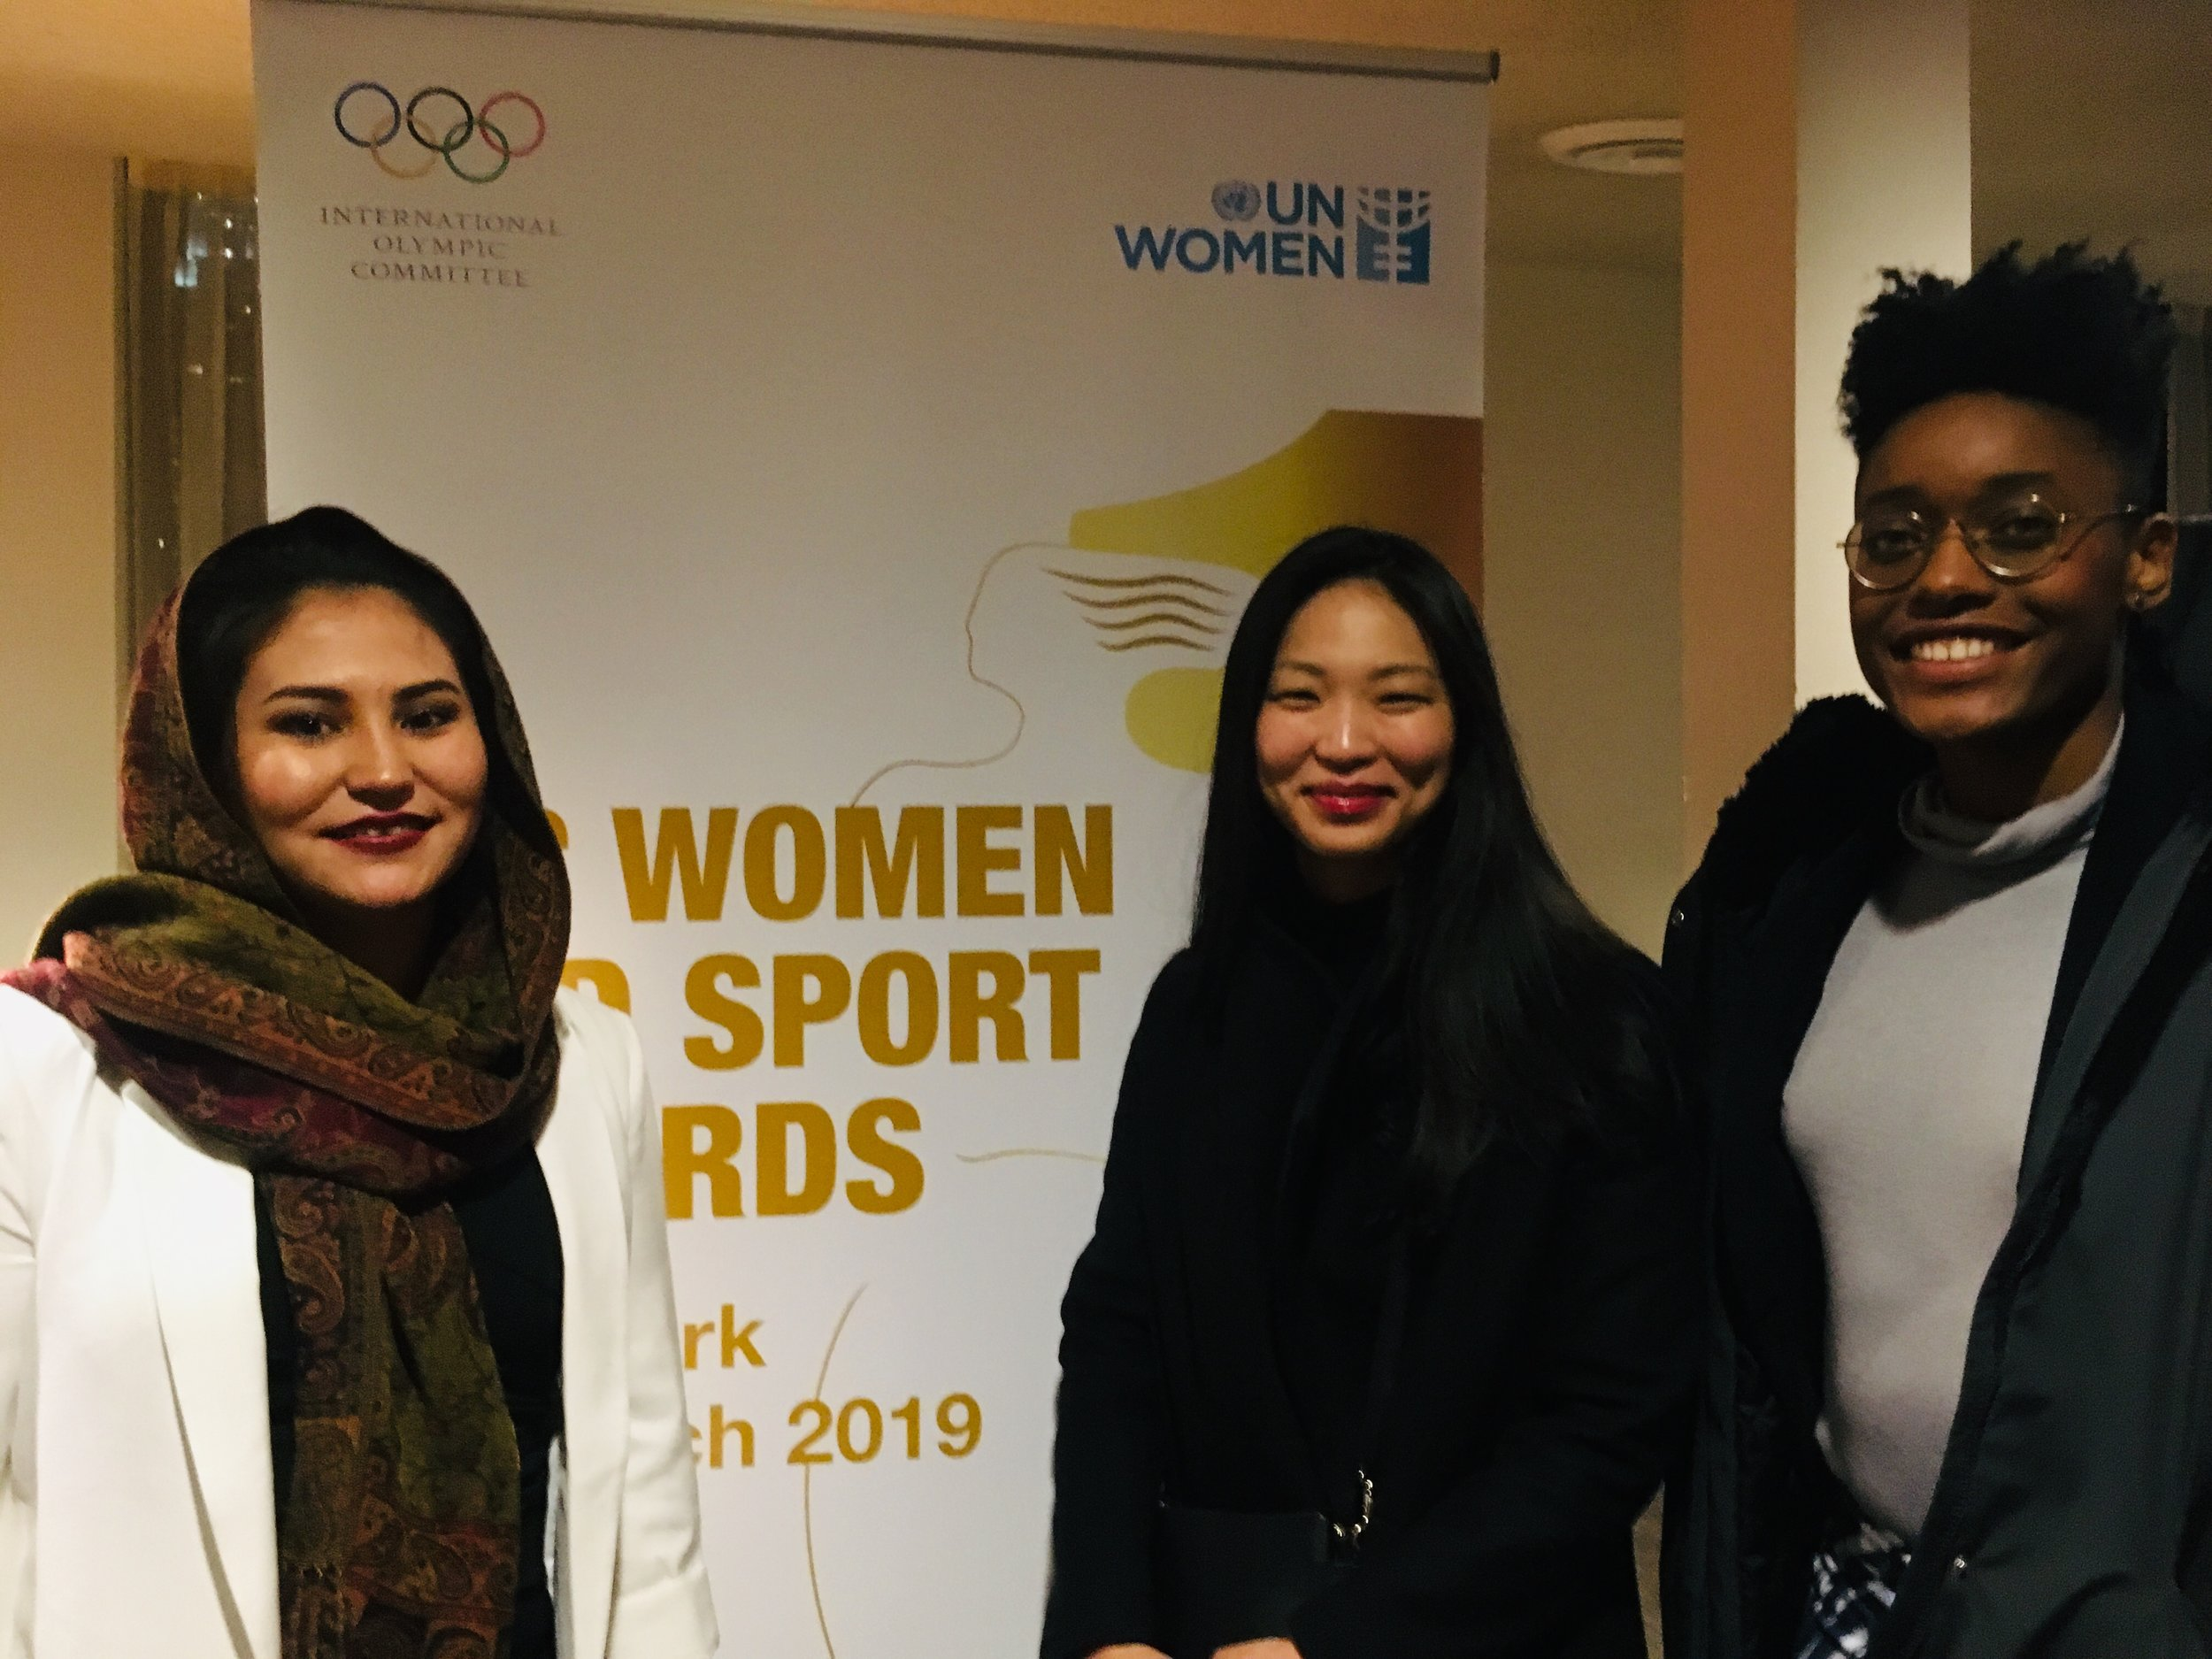 UN Women + Intl Olympic Committee